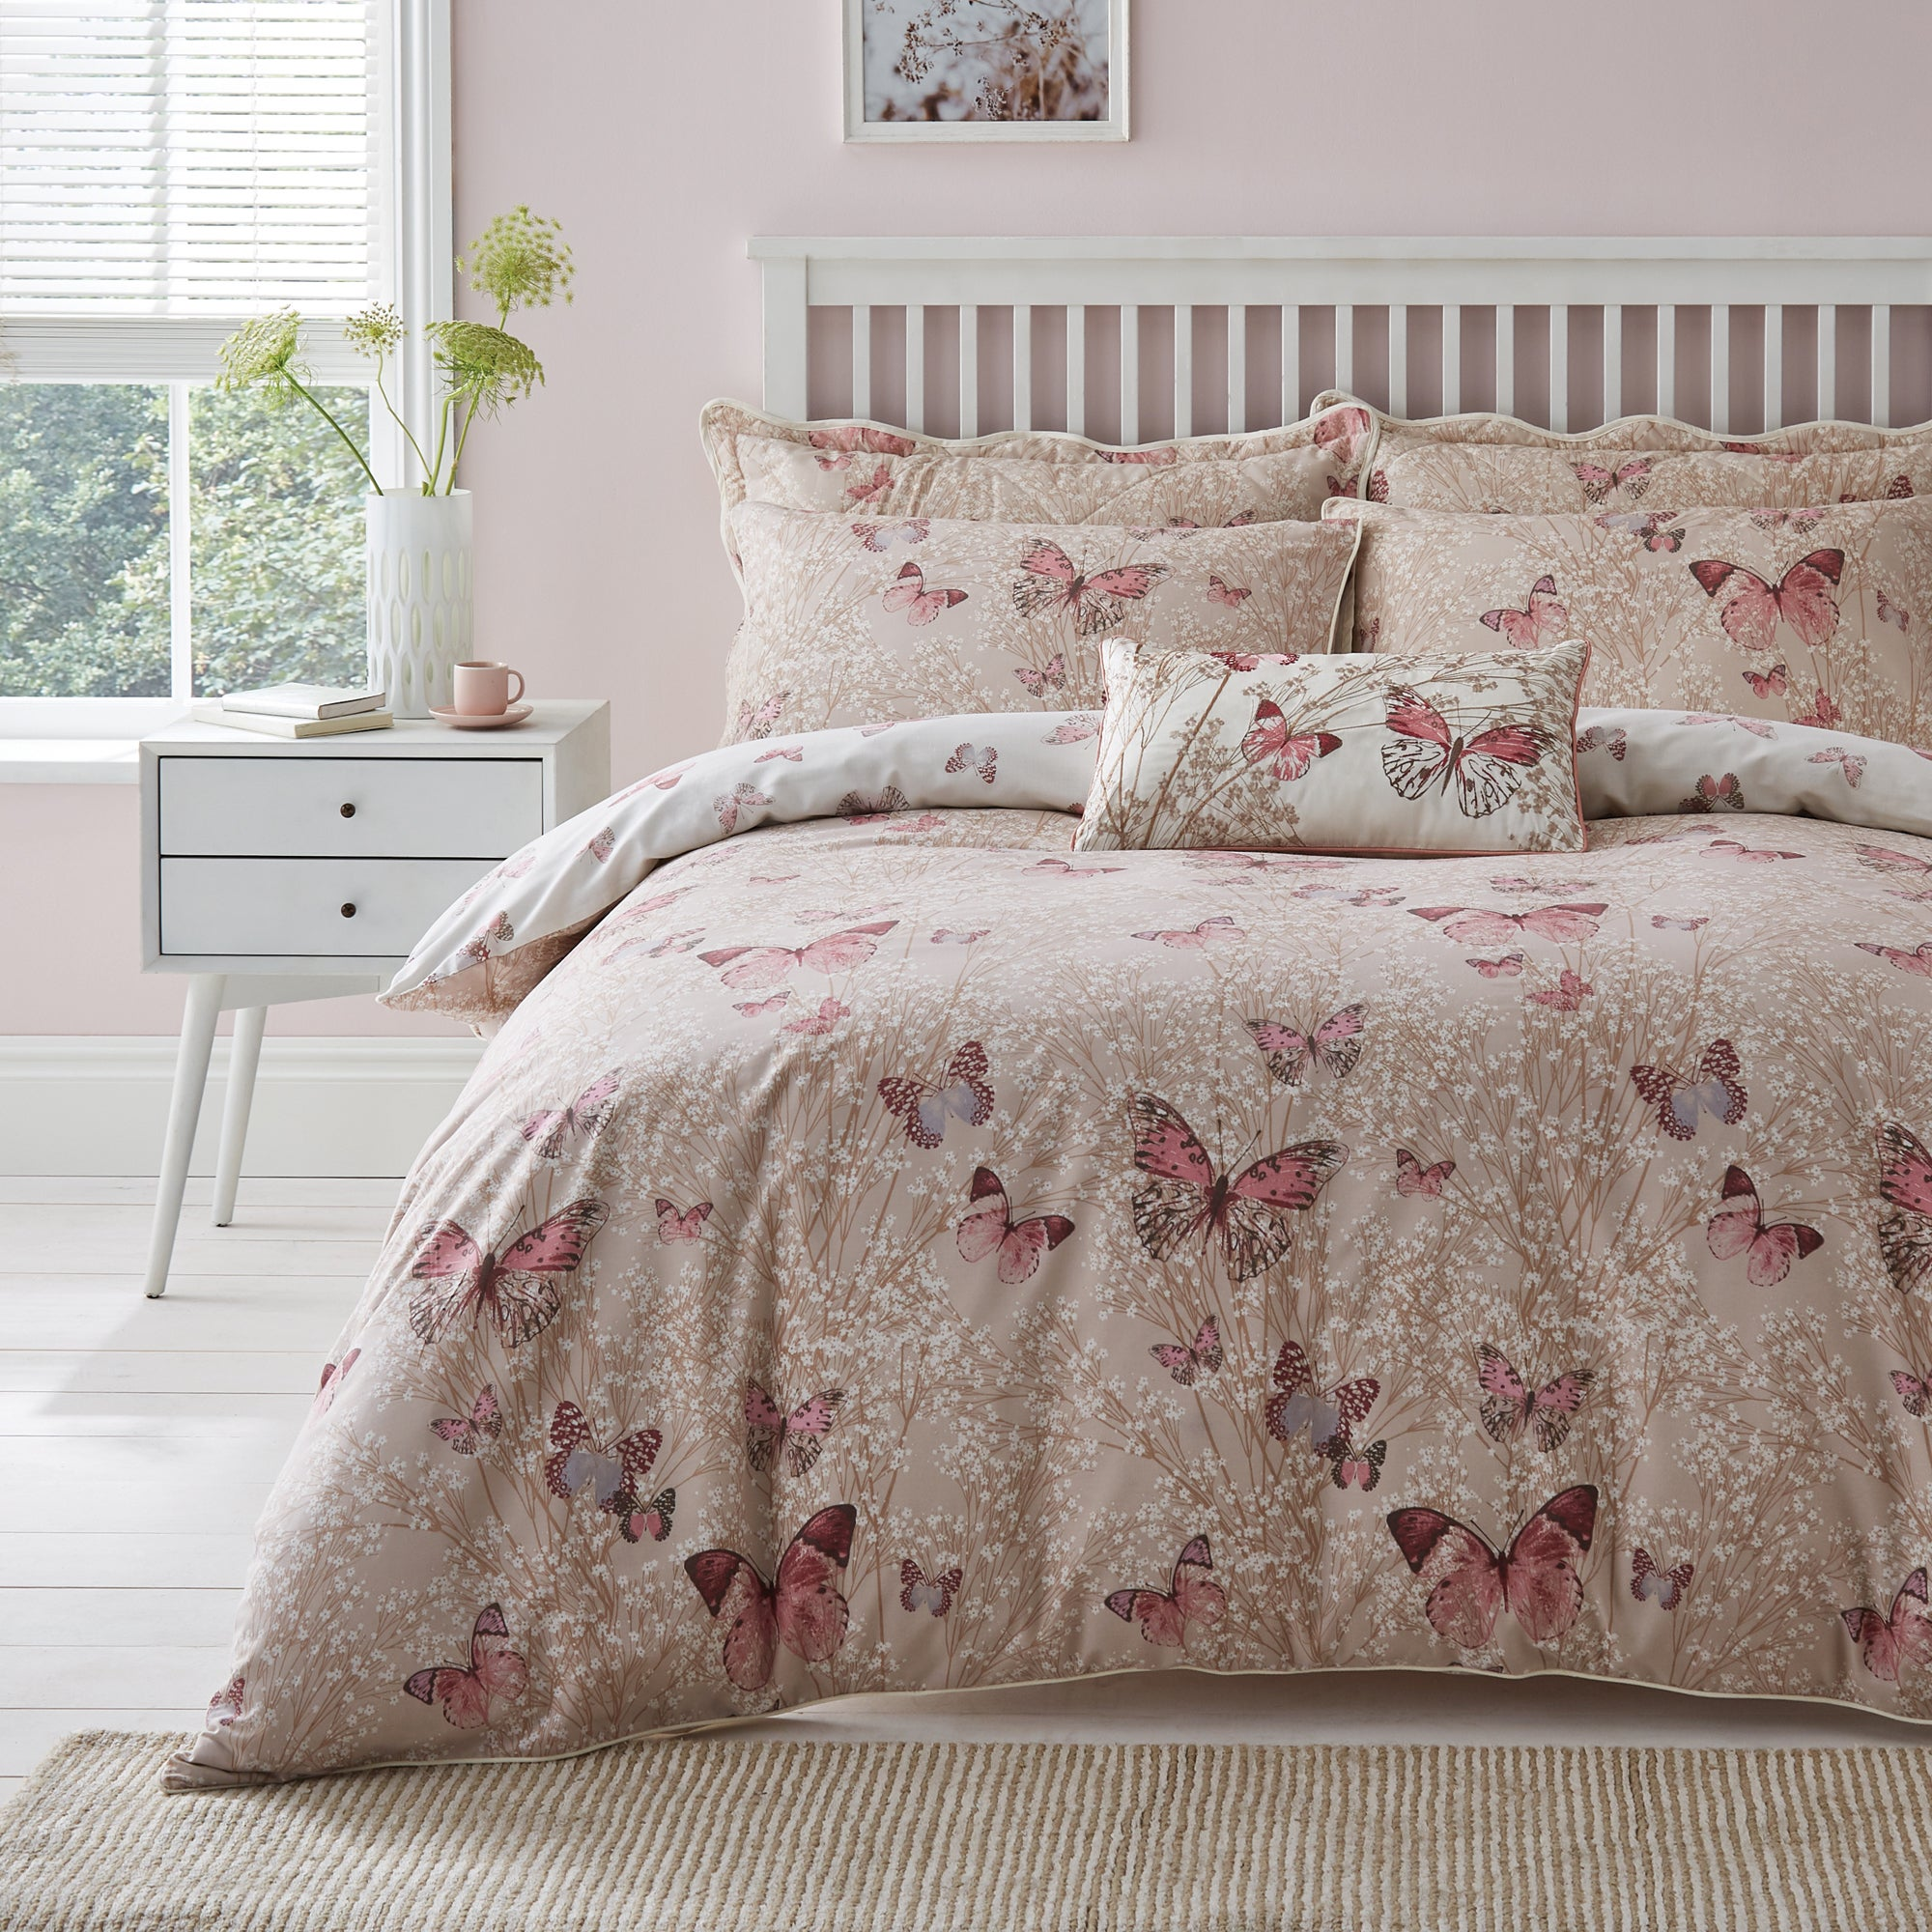 Blush Botanica Butterfly Collection Duvet Cover Set